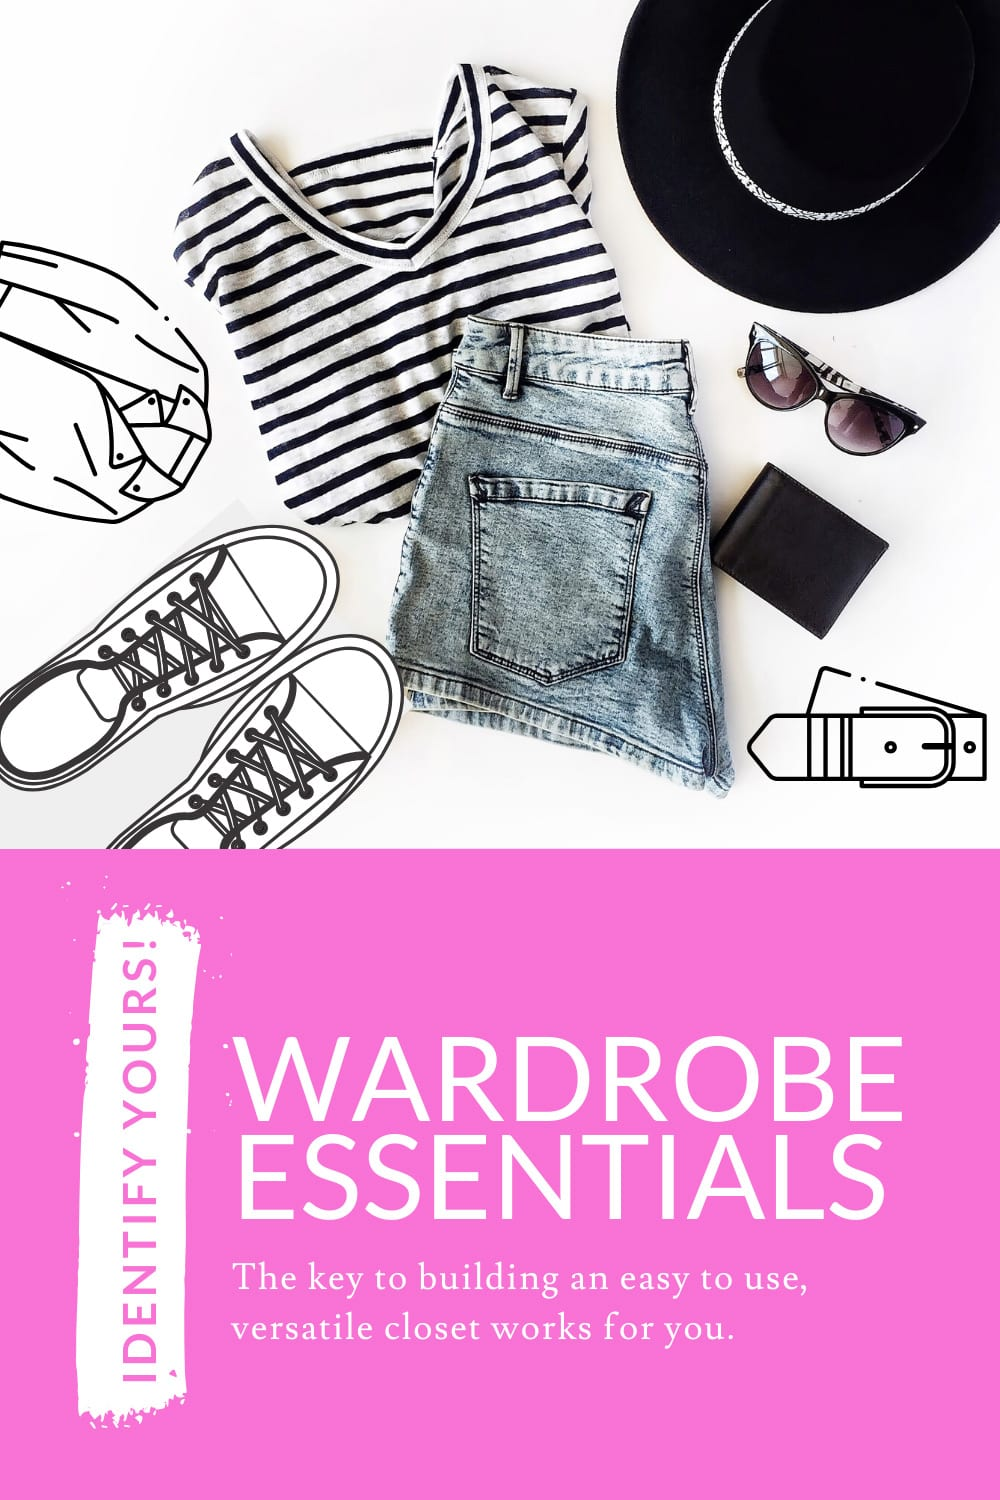 How to choose the right wardrobe essentials for your capsule wardrobe